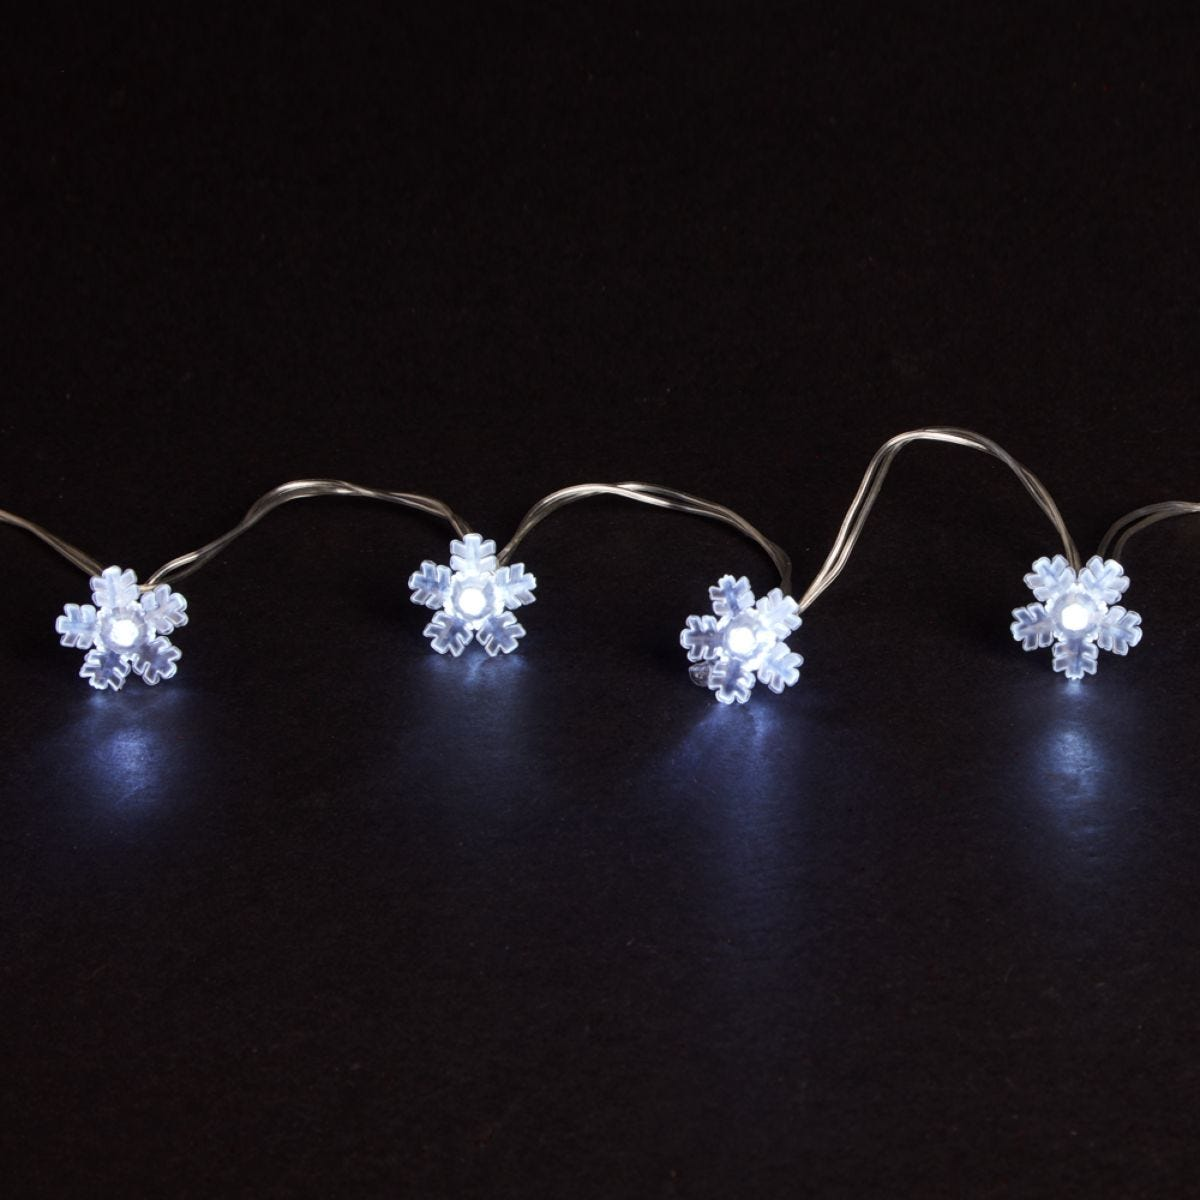 Robert Dyas 20 Battery Operated LED Snowflake Lights - Ice White